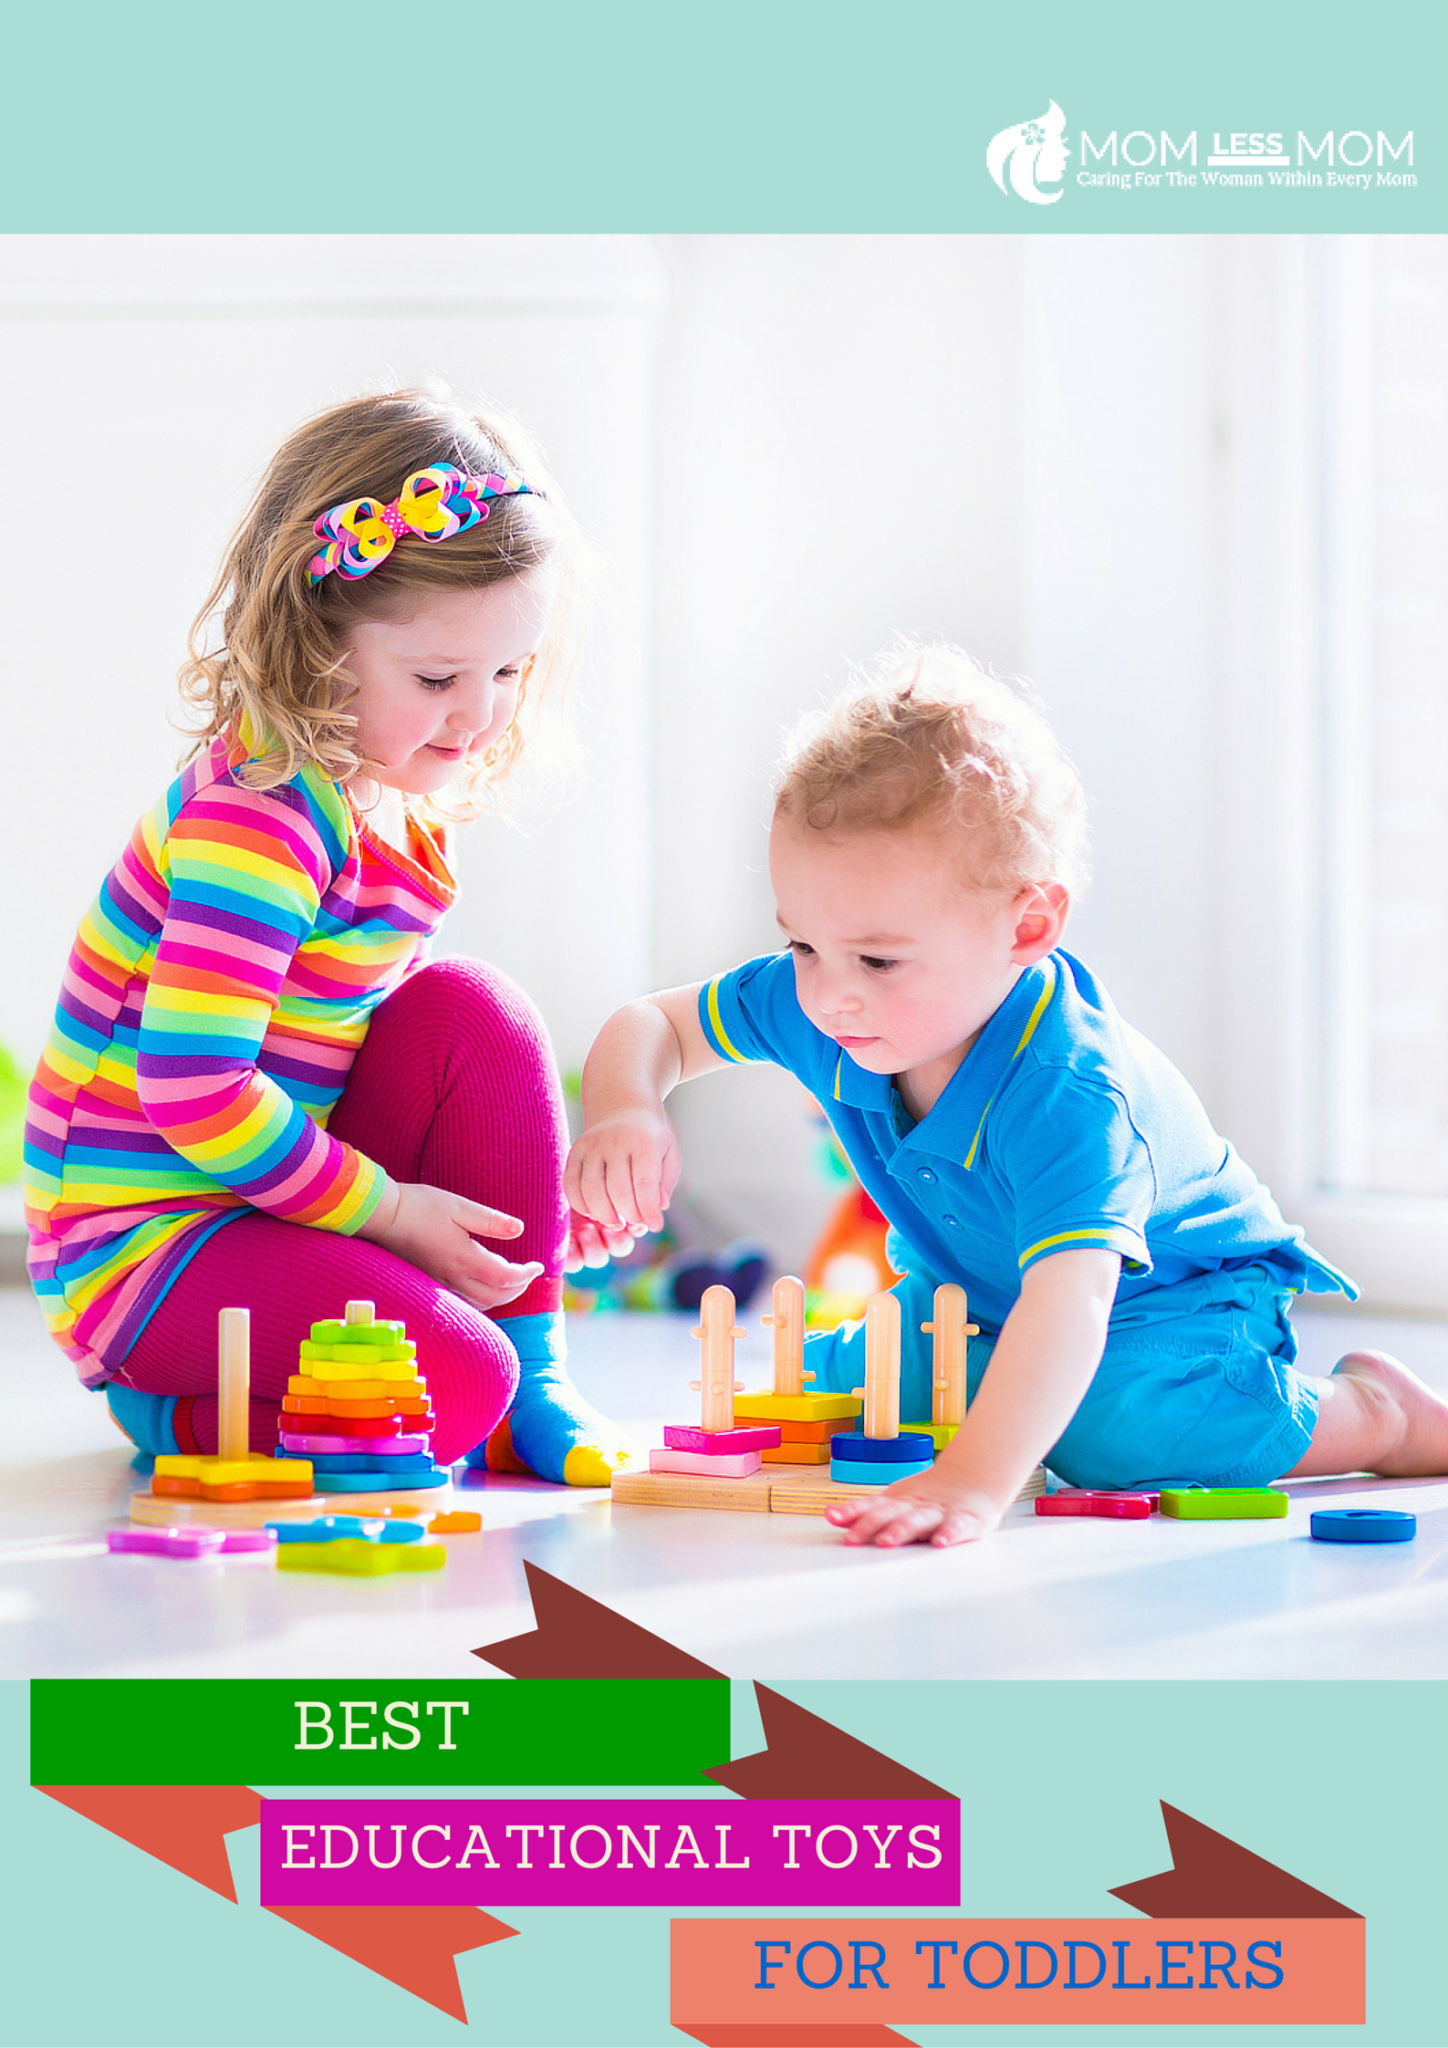 Best Educational Toy Site : Best educational toys for toddlers